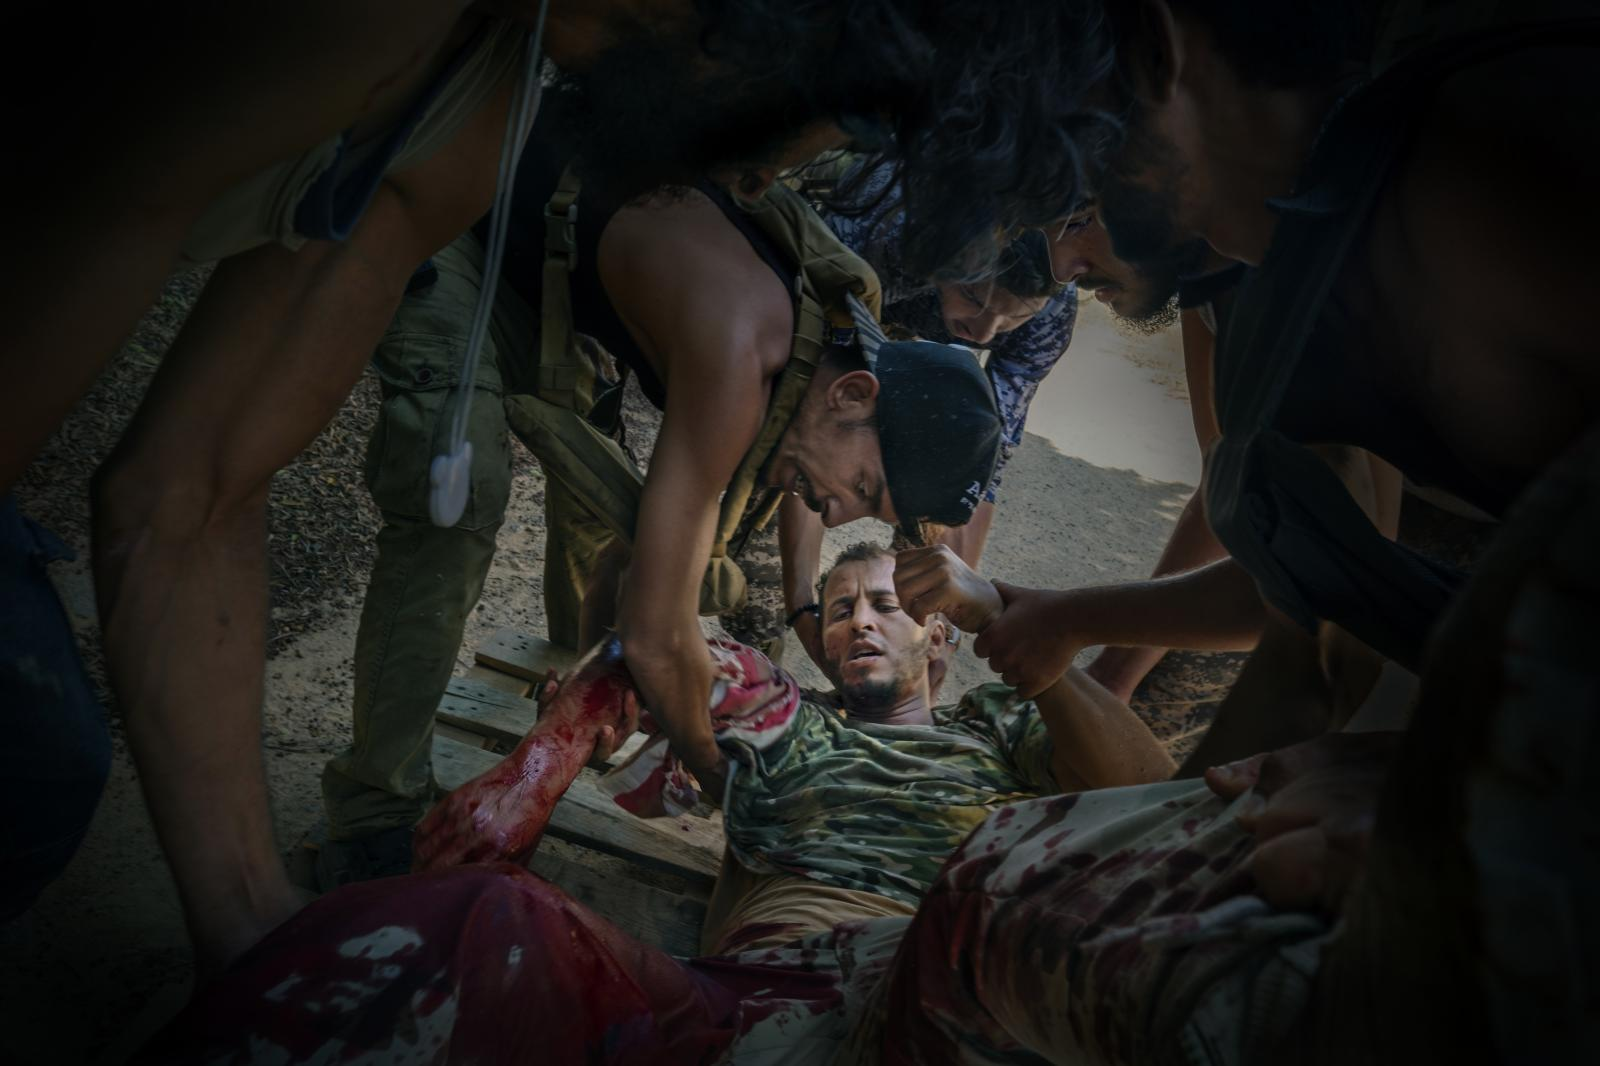 """A mortally wounded solider from the """"Shelba"""" unit, allied with the Libyan government and backed by the UN, is moved after being shot on the front line, in Tripoli's Salah al-Din neighbourhood. The fighting broke out in April 2019, when the self-proclaimed Libyan National Army under Field Marshal Khalifa Hafter launched an offensive to take Tripoli (2014-2020)."""